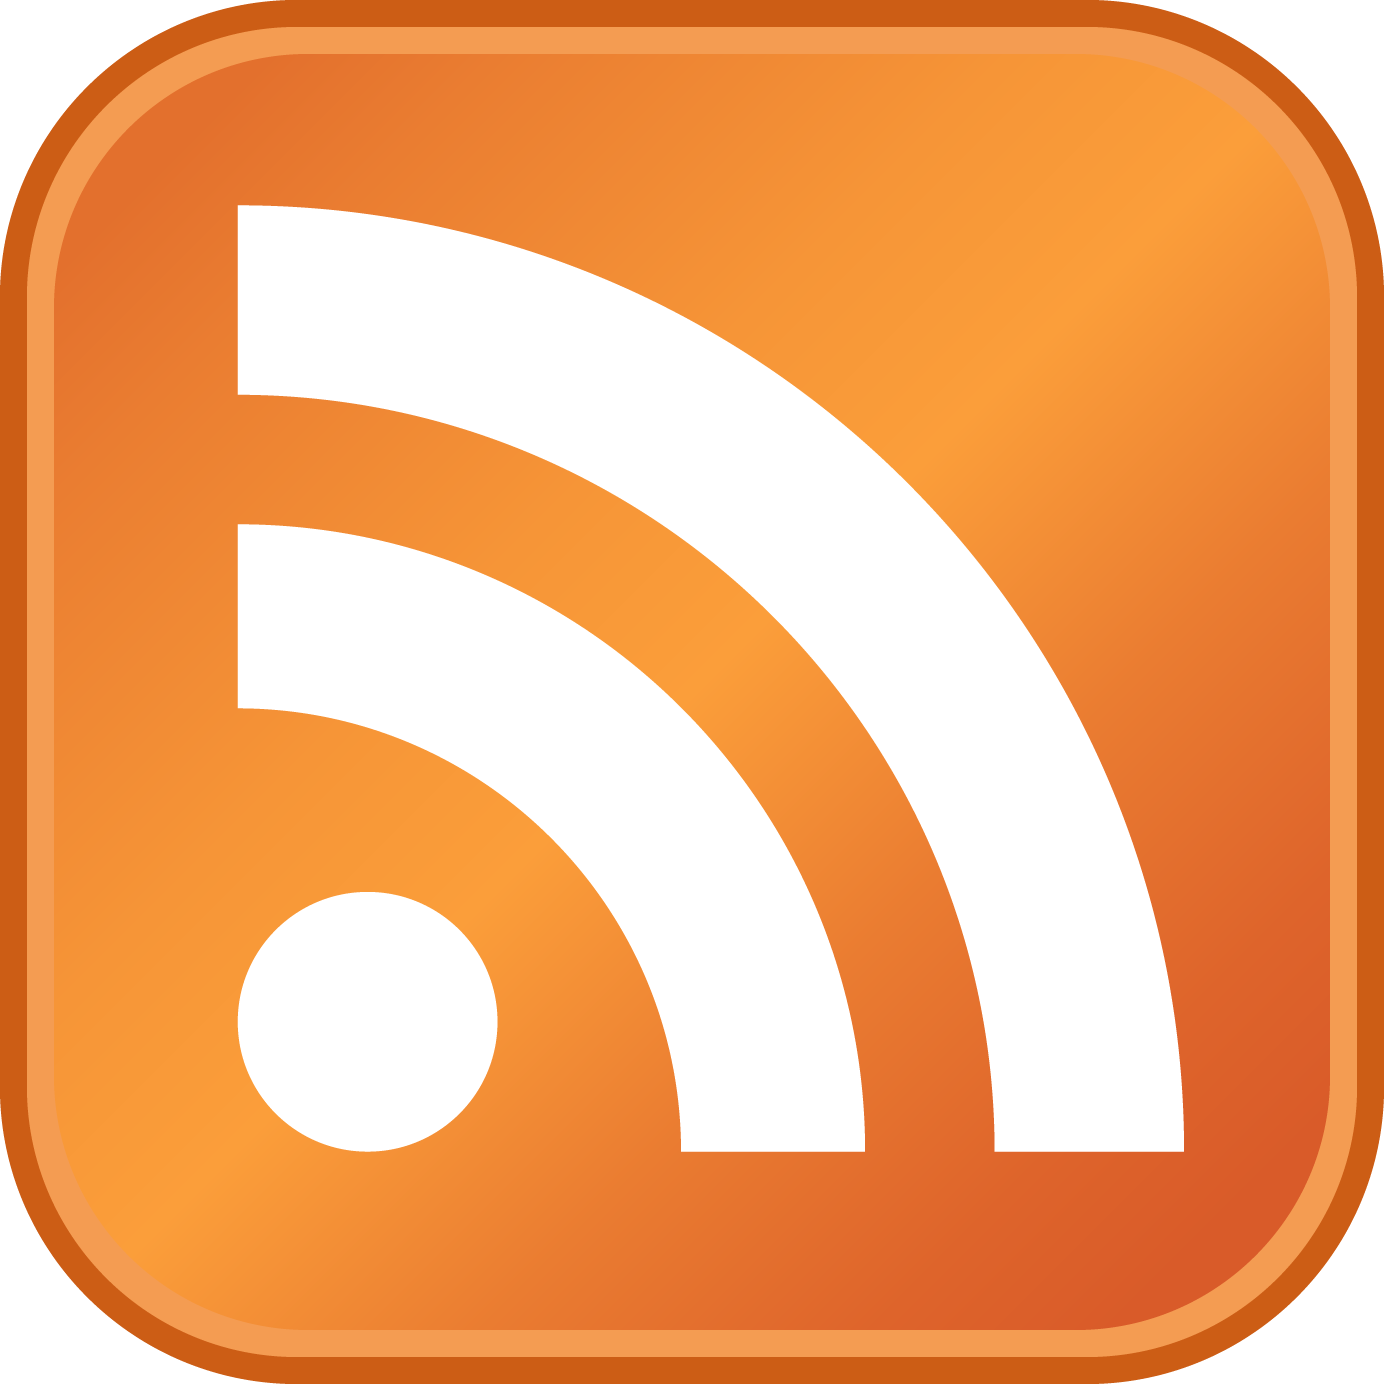 RSS Logo (Really Simple Syndication) png